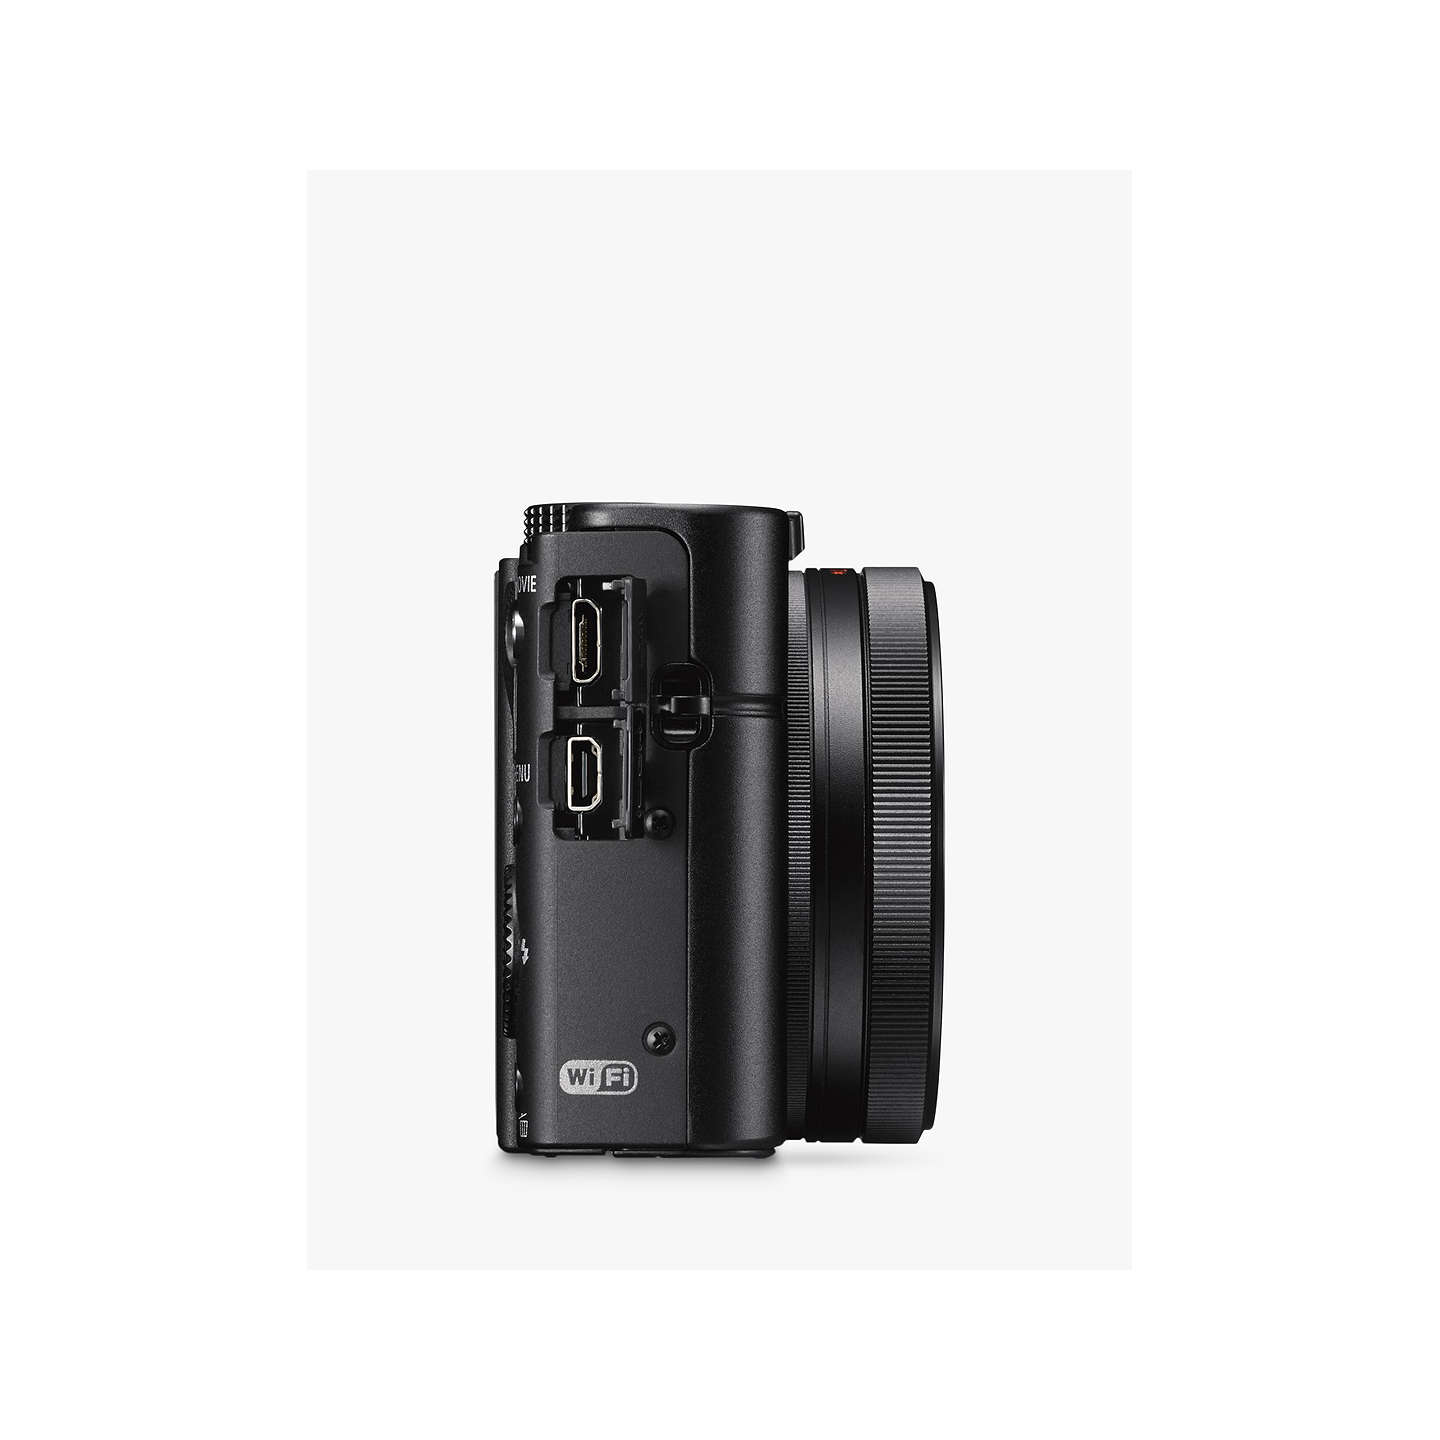 "BuySony Cyber-shot DSC-RX100 III Camera, HD 1080p, 20.1MP, 2.9x Optical Zoom, Wi-Fi, NFC, OLED EVF, 3"" Screen with Case & Attachment Grip Kit Online at johnlewis.com"